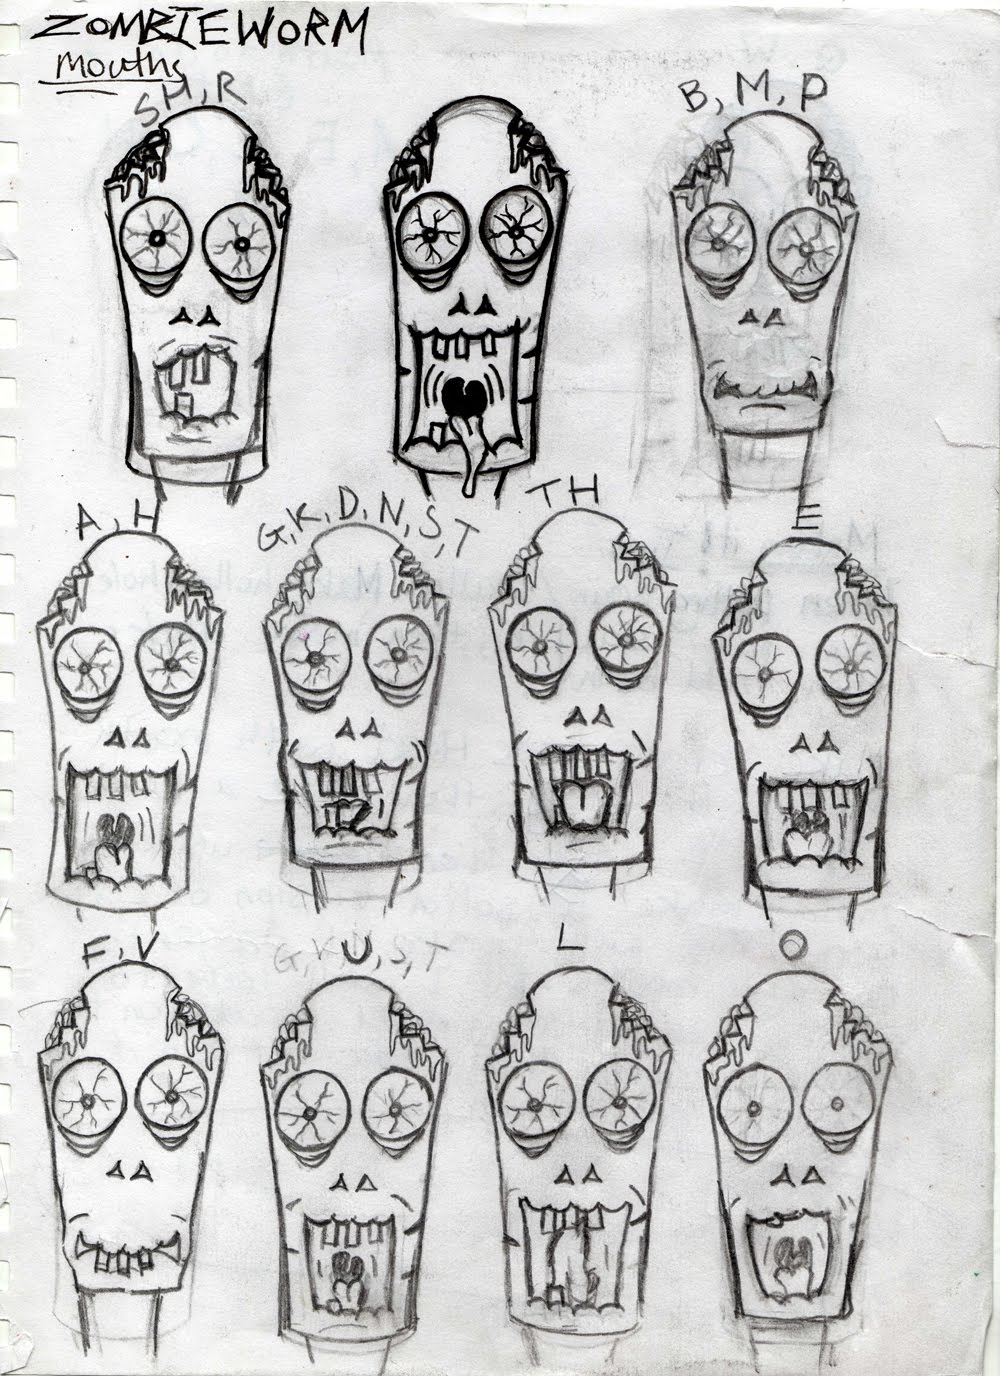 Zombieworm+mouths+sketches